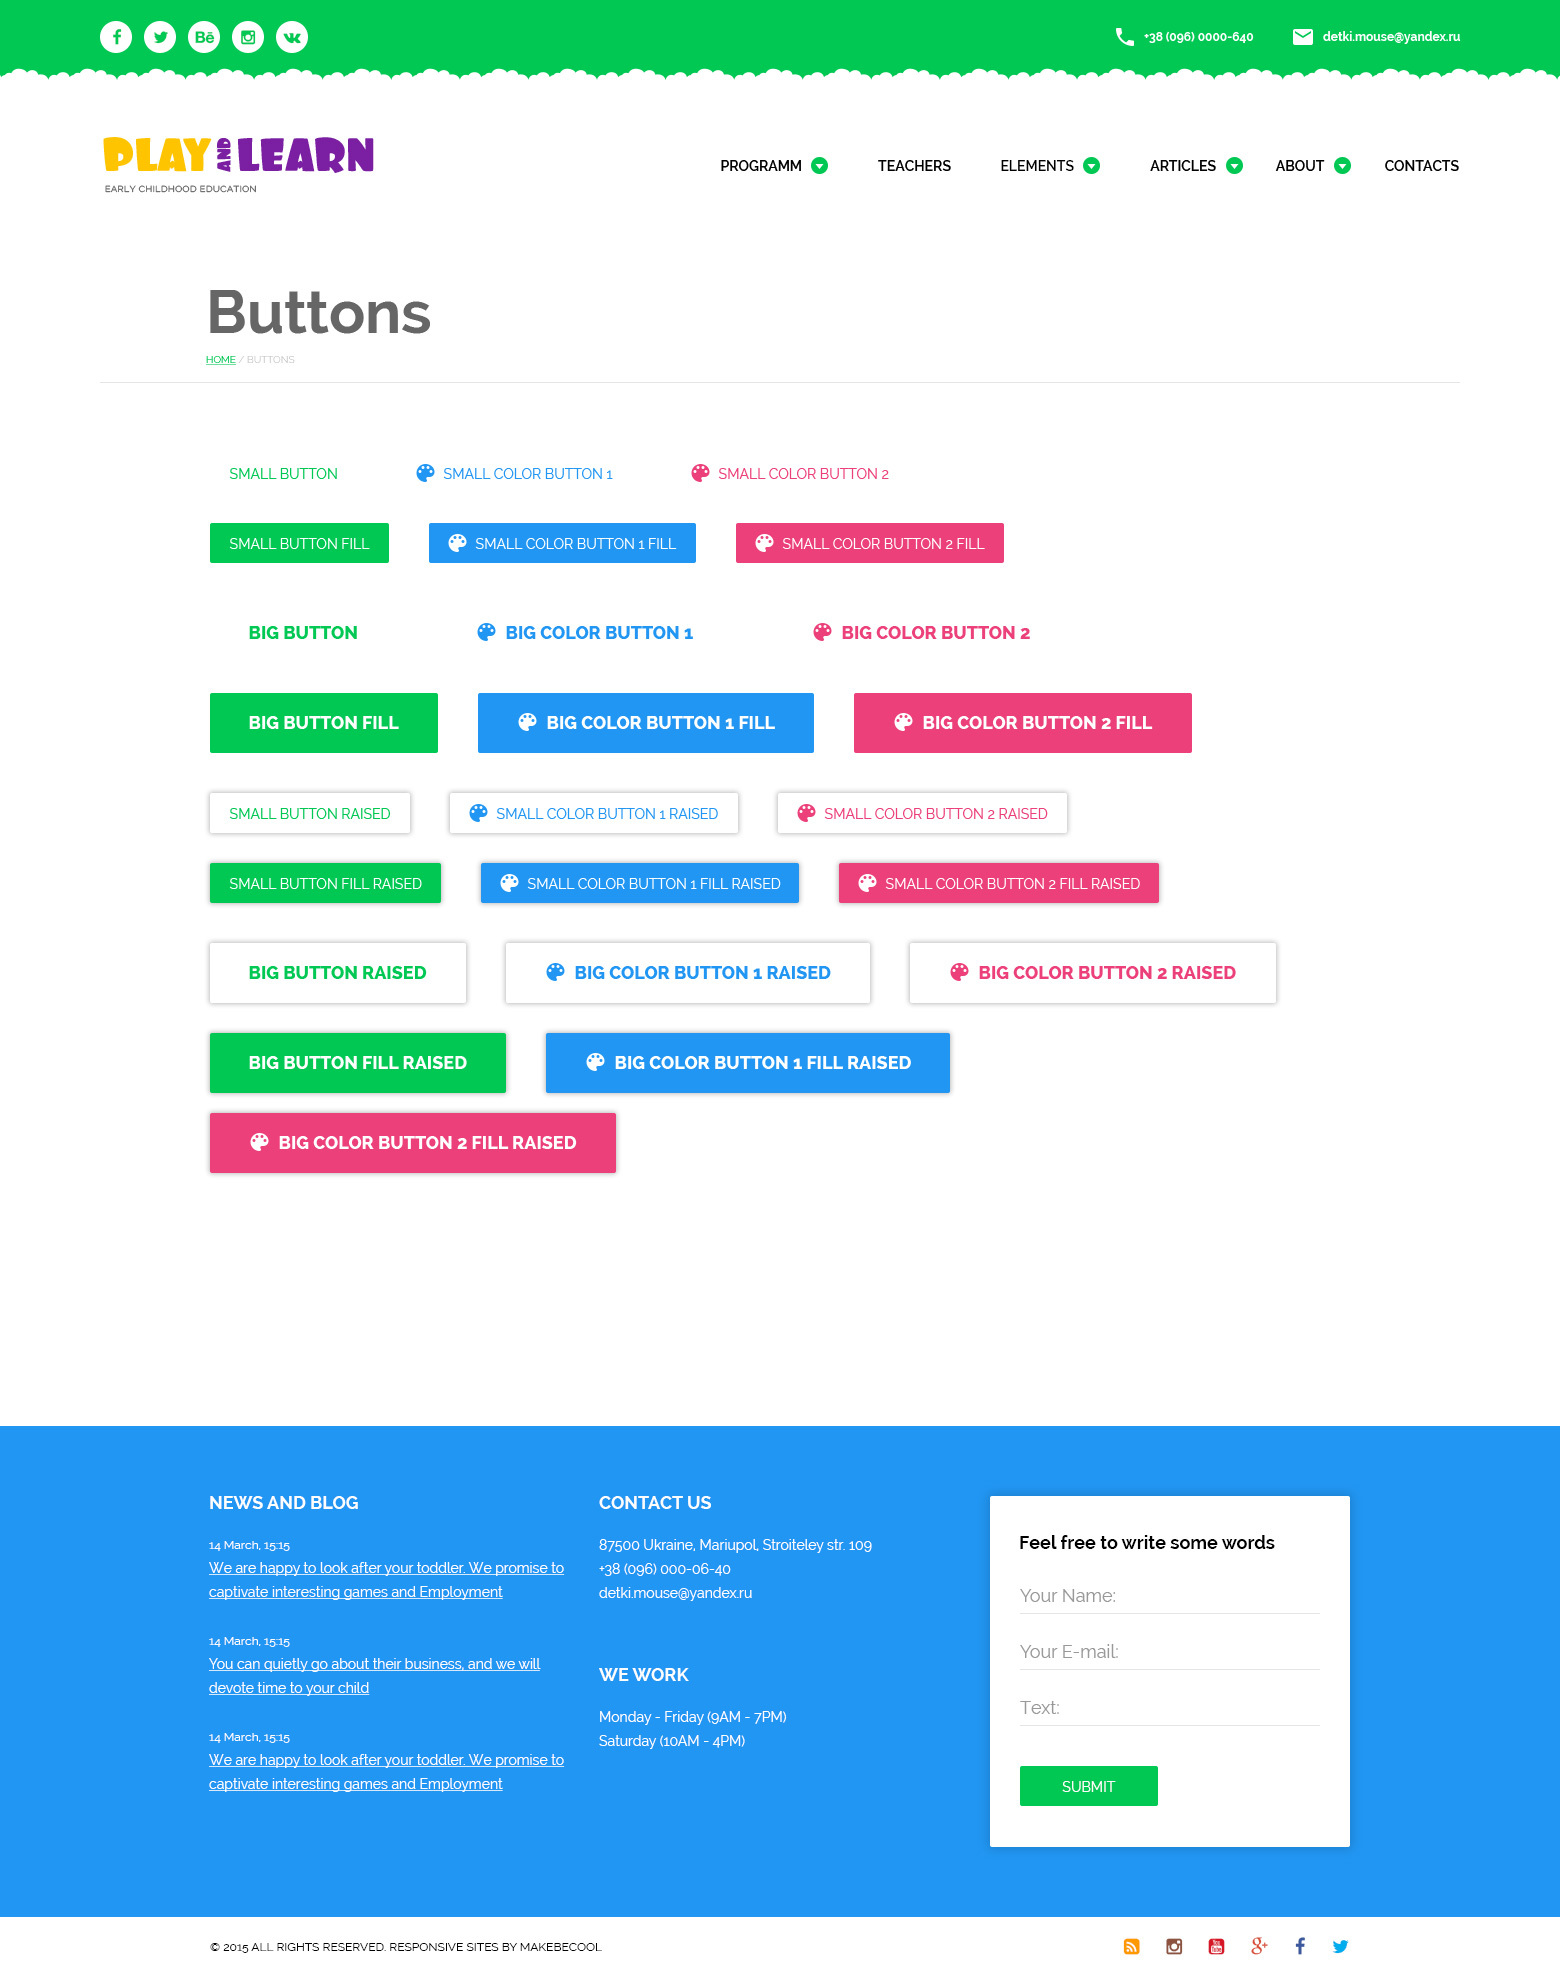 themKids - Material Design Template